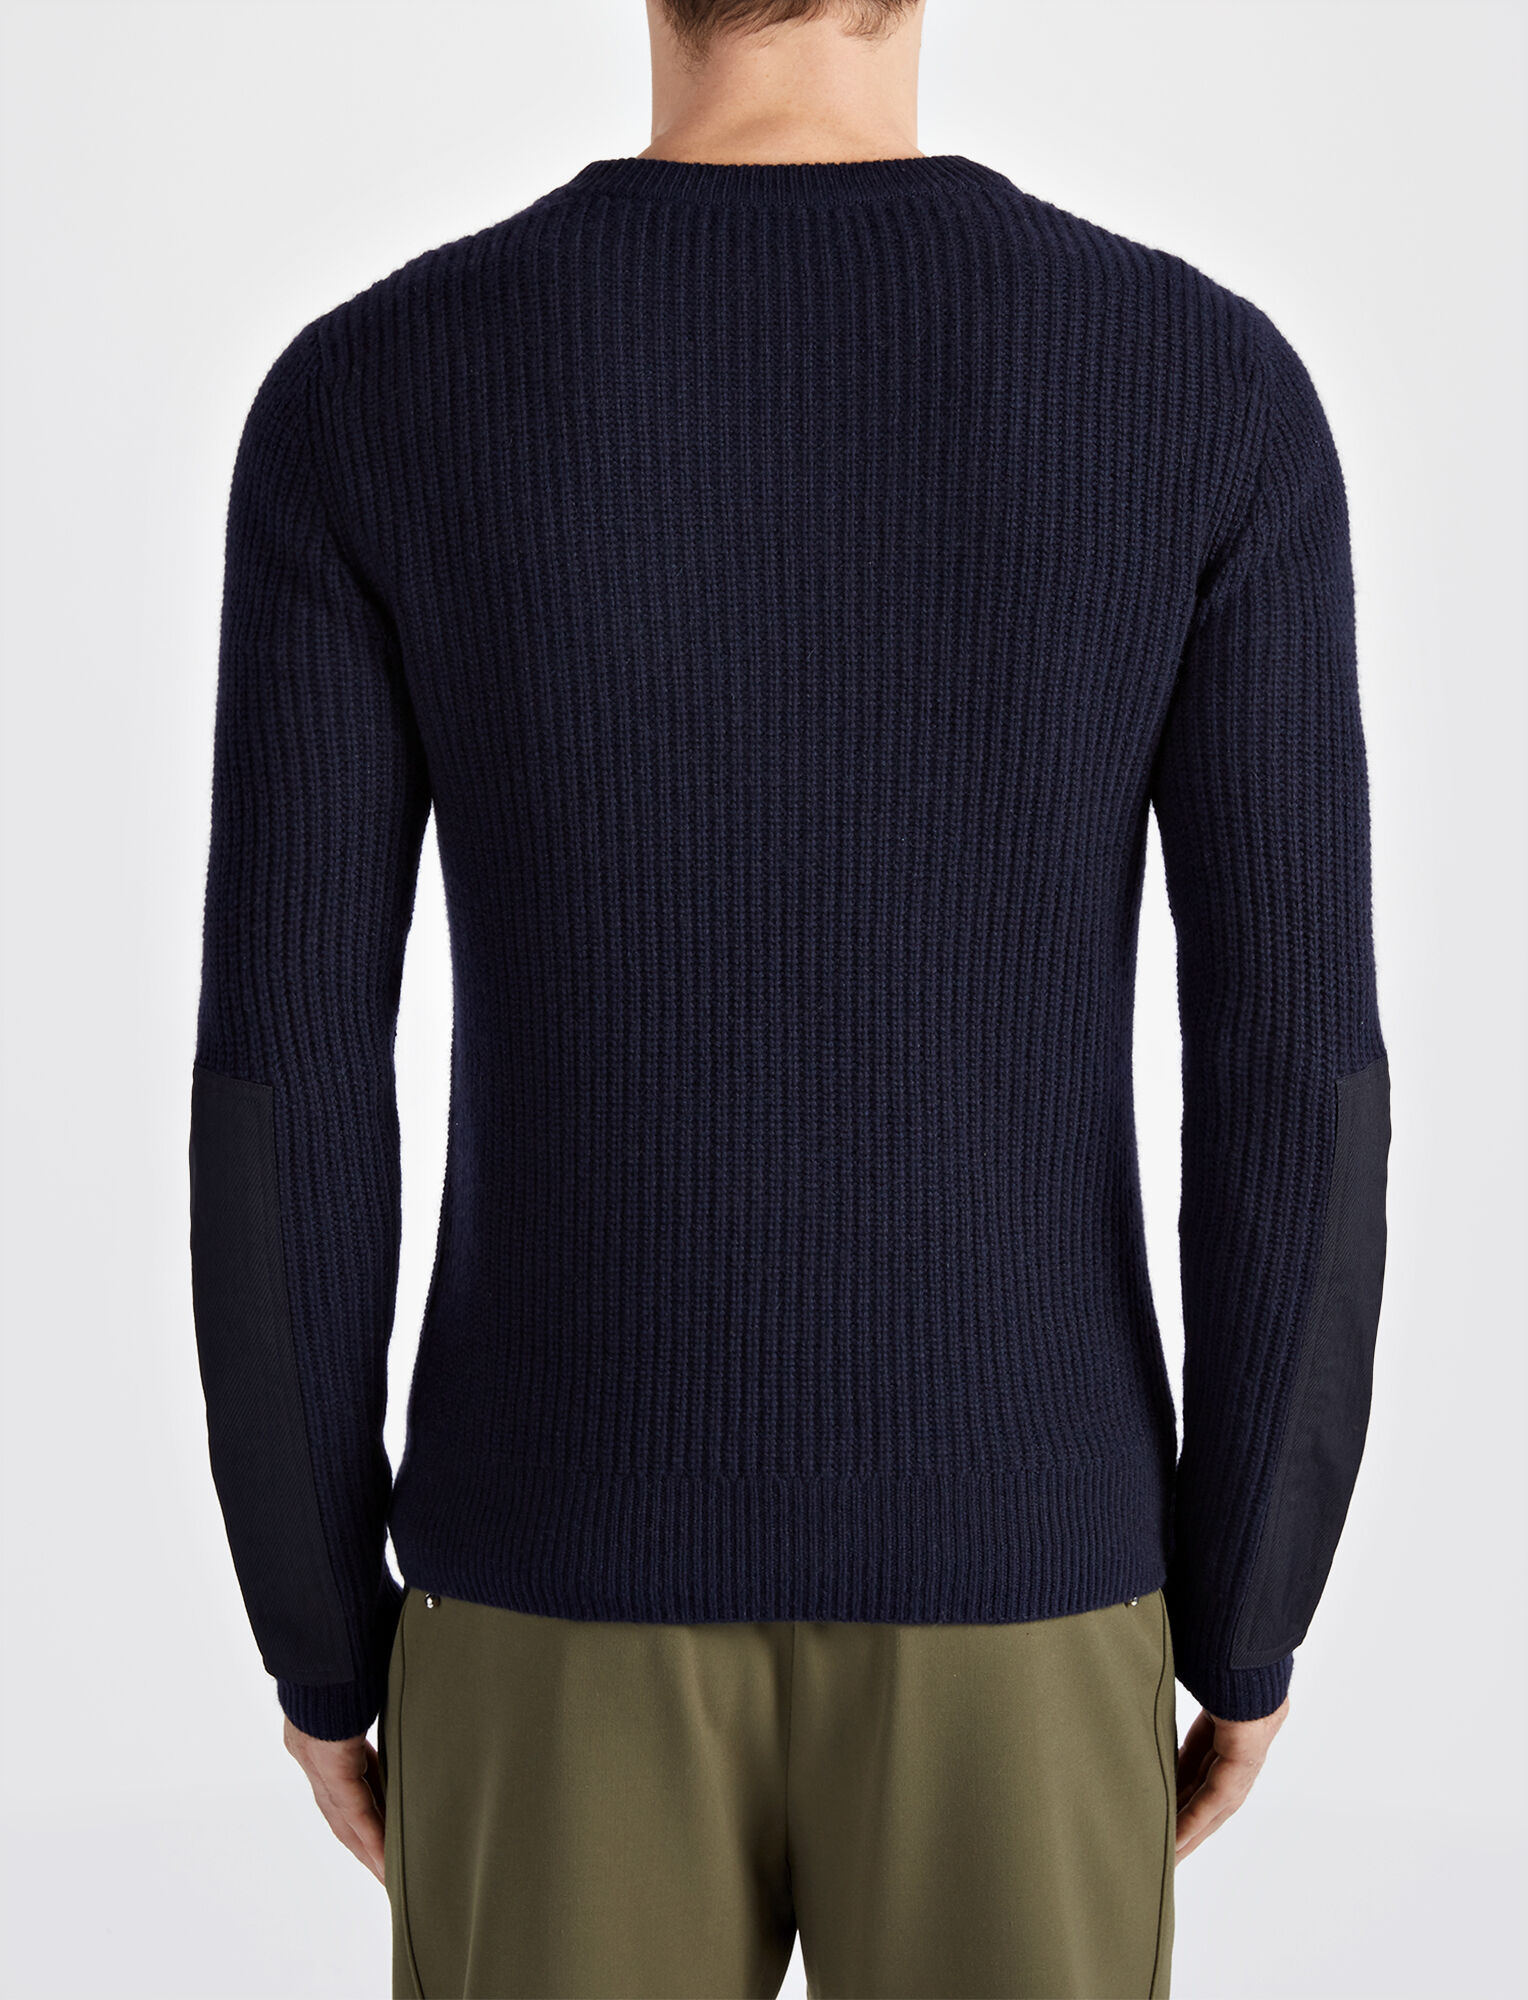 Joseph, Military Cashmere V Neck Sweater, in NAVY